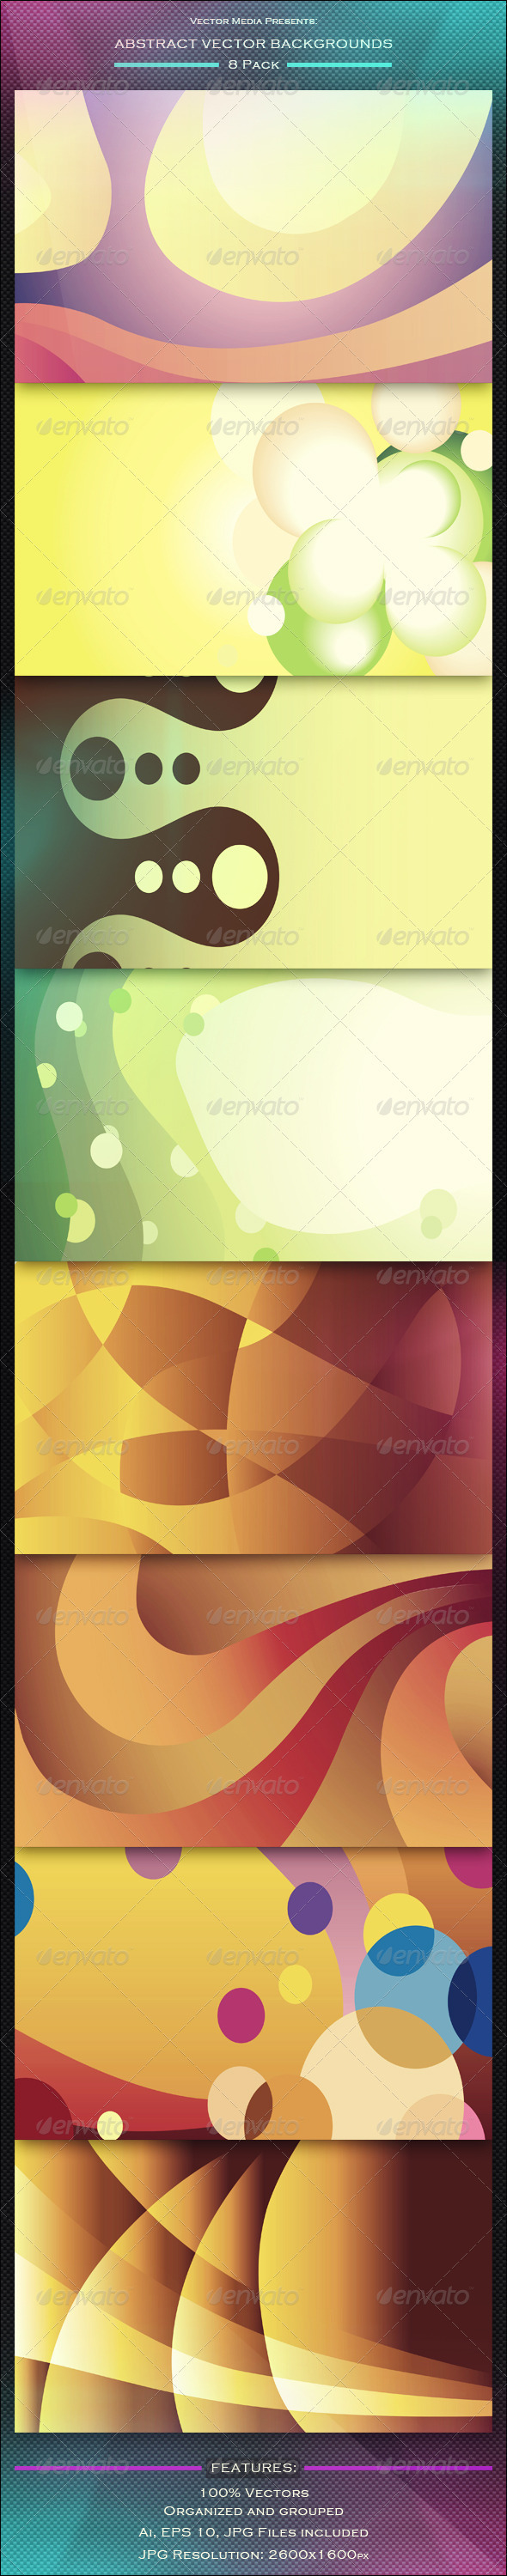 Abstract Vector Backgrounds - 8 Pack - Backgrounds Decorative